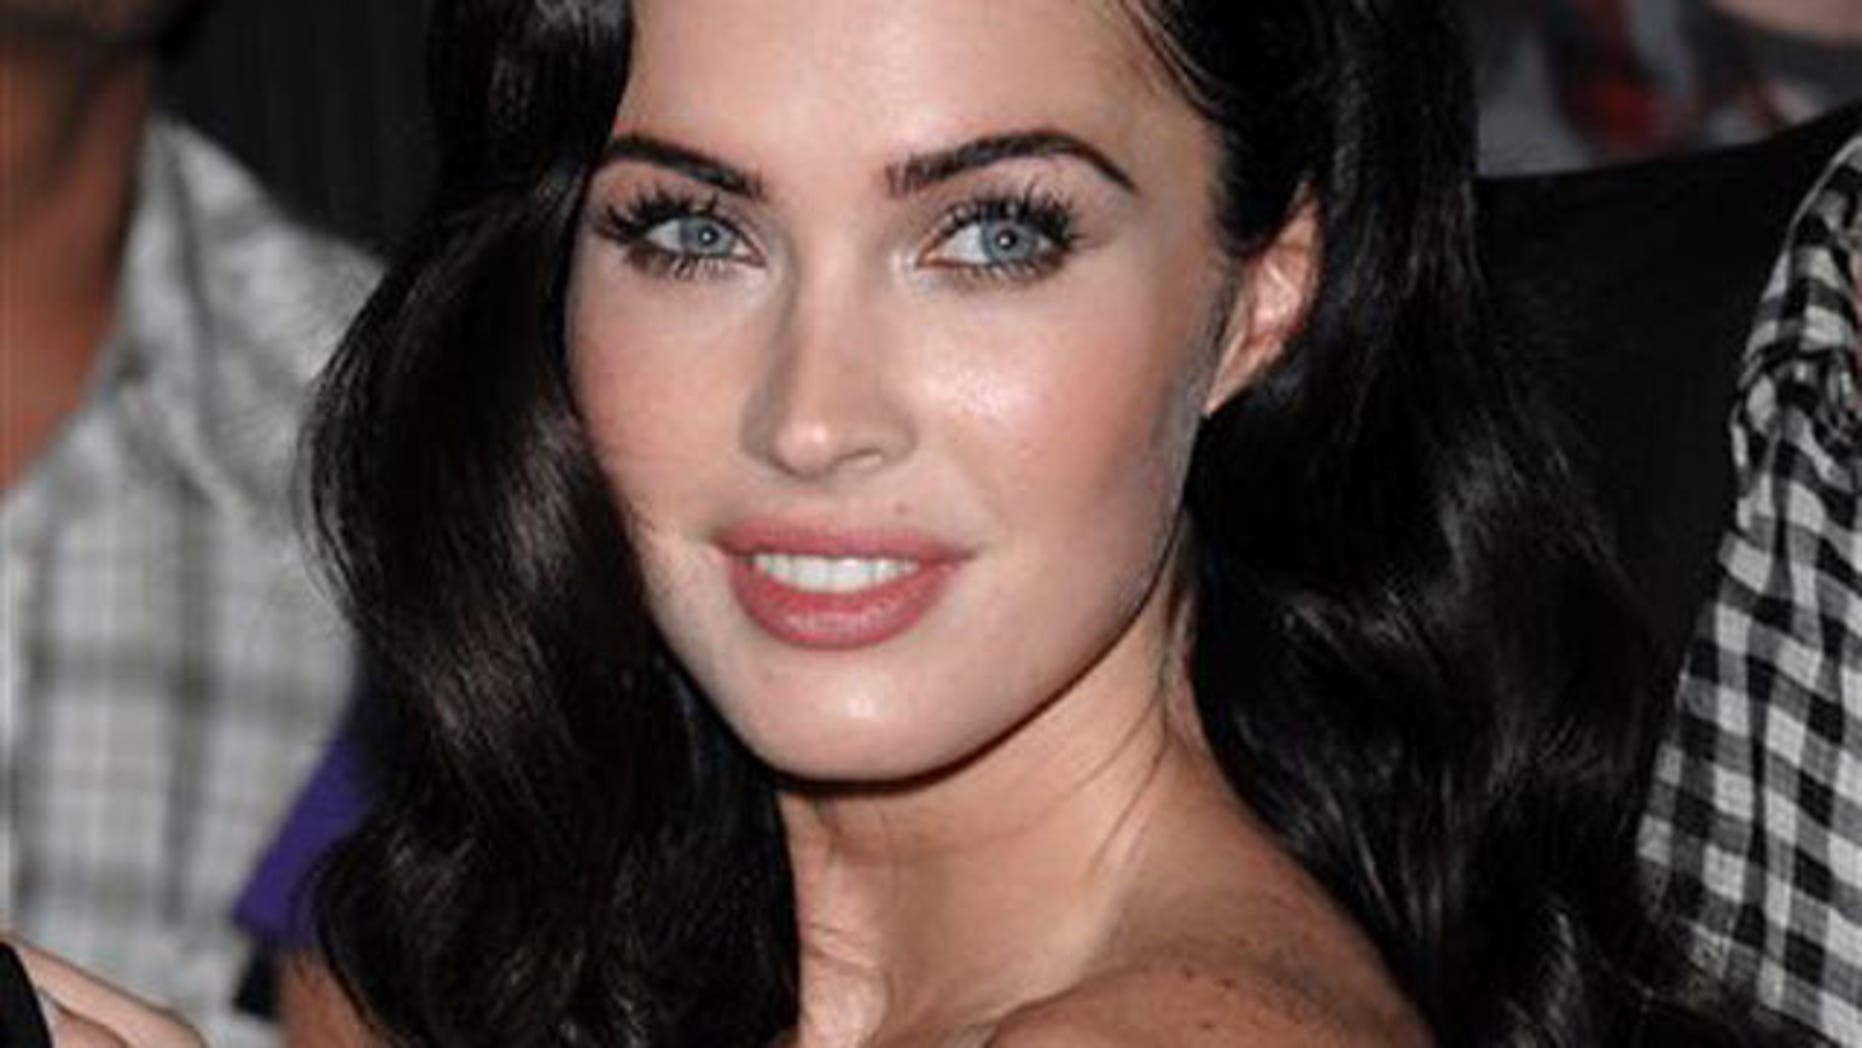 Amanda Seyfried Sex Tape megan fox says she's bisexual, but had problems making out